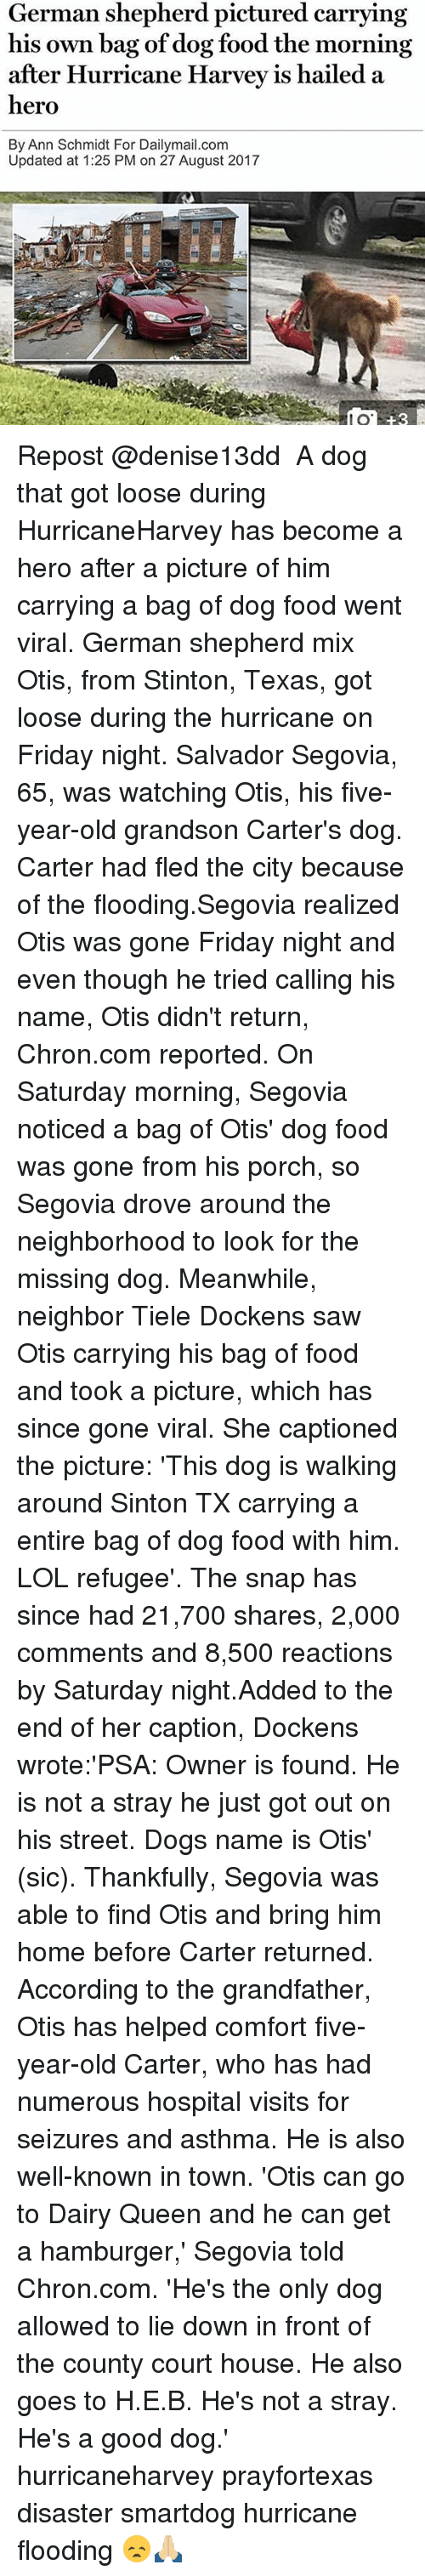 courting: German shepherd pictured carrying  his own bag of dog food the morning  after Hurricane Harvev is hailed a  hero  By Ann Schmidt For Dailymail.com  Updated at 1:25 PM on 27 August 2017  80  8 Repost @denise13dd ・・・ A dog that got loose during HurricaneHarvey has become a hero after a picture of him carrying a bag of dog food went viral. German shepherd mix Otis, from Stinton, Texas, got loose during the hurricane on Friday night. Salvador Segovia, 65, was watching Otis, his five-year-old grandson Carter's dog. Carter had fled the city because of the flooding.Segovia realized Otis was gone Friday night and even though he tried calling his name, Otis didn't return, Chron.com reported. On Saturday morning, Segovia noticed a bag of Otis' dog food was gone from his porch, so Segovia drove around the neighborhood to look for the missing dog. Meanwhile, neighbor Tiele Dockens saw Otis carrying his bag of food and took a picture, which has since gone viral. She captioned the picture: 'This dog is walking around Sinton TX carrying a entire bag of dog food with him. LOL refugee'. The snap has since had 21,700 shares, 2,000 comments and 8,500 reactions by Saturday night.Added to the end of her caption, Dockens wrote:'PSA: Owner is found. He is not a stray he just got out on his street. Dogs name is Otis' (sic). Thankfully, Segovia was able to find Otis and bring him home before Carter returned. According to the grandfather, Otis has helped comfort five-year-old Carter, who has had numerous hospital visits for seizures and asthma. He is also well-known in town. 'Otis can go to Dairy Queen and he can get a hamburger,' Segovia told Chron.com. 'He's the only dog allowed to lie down in front of the county court house. He also goes to H.E.B. He's not a stray. He's a good dog.' hurricaneharvey prayfortexas disaster smartdog hurricane flooding 😞🙏🏼